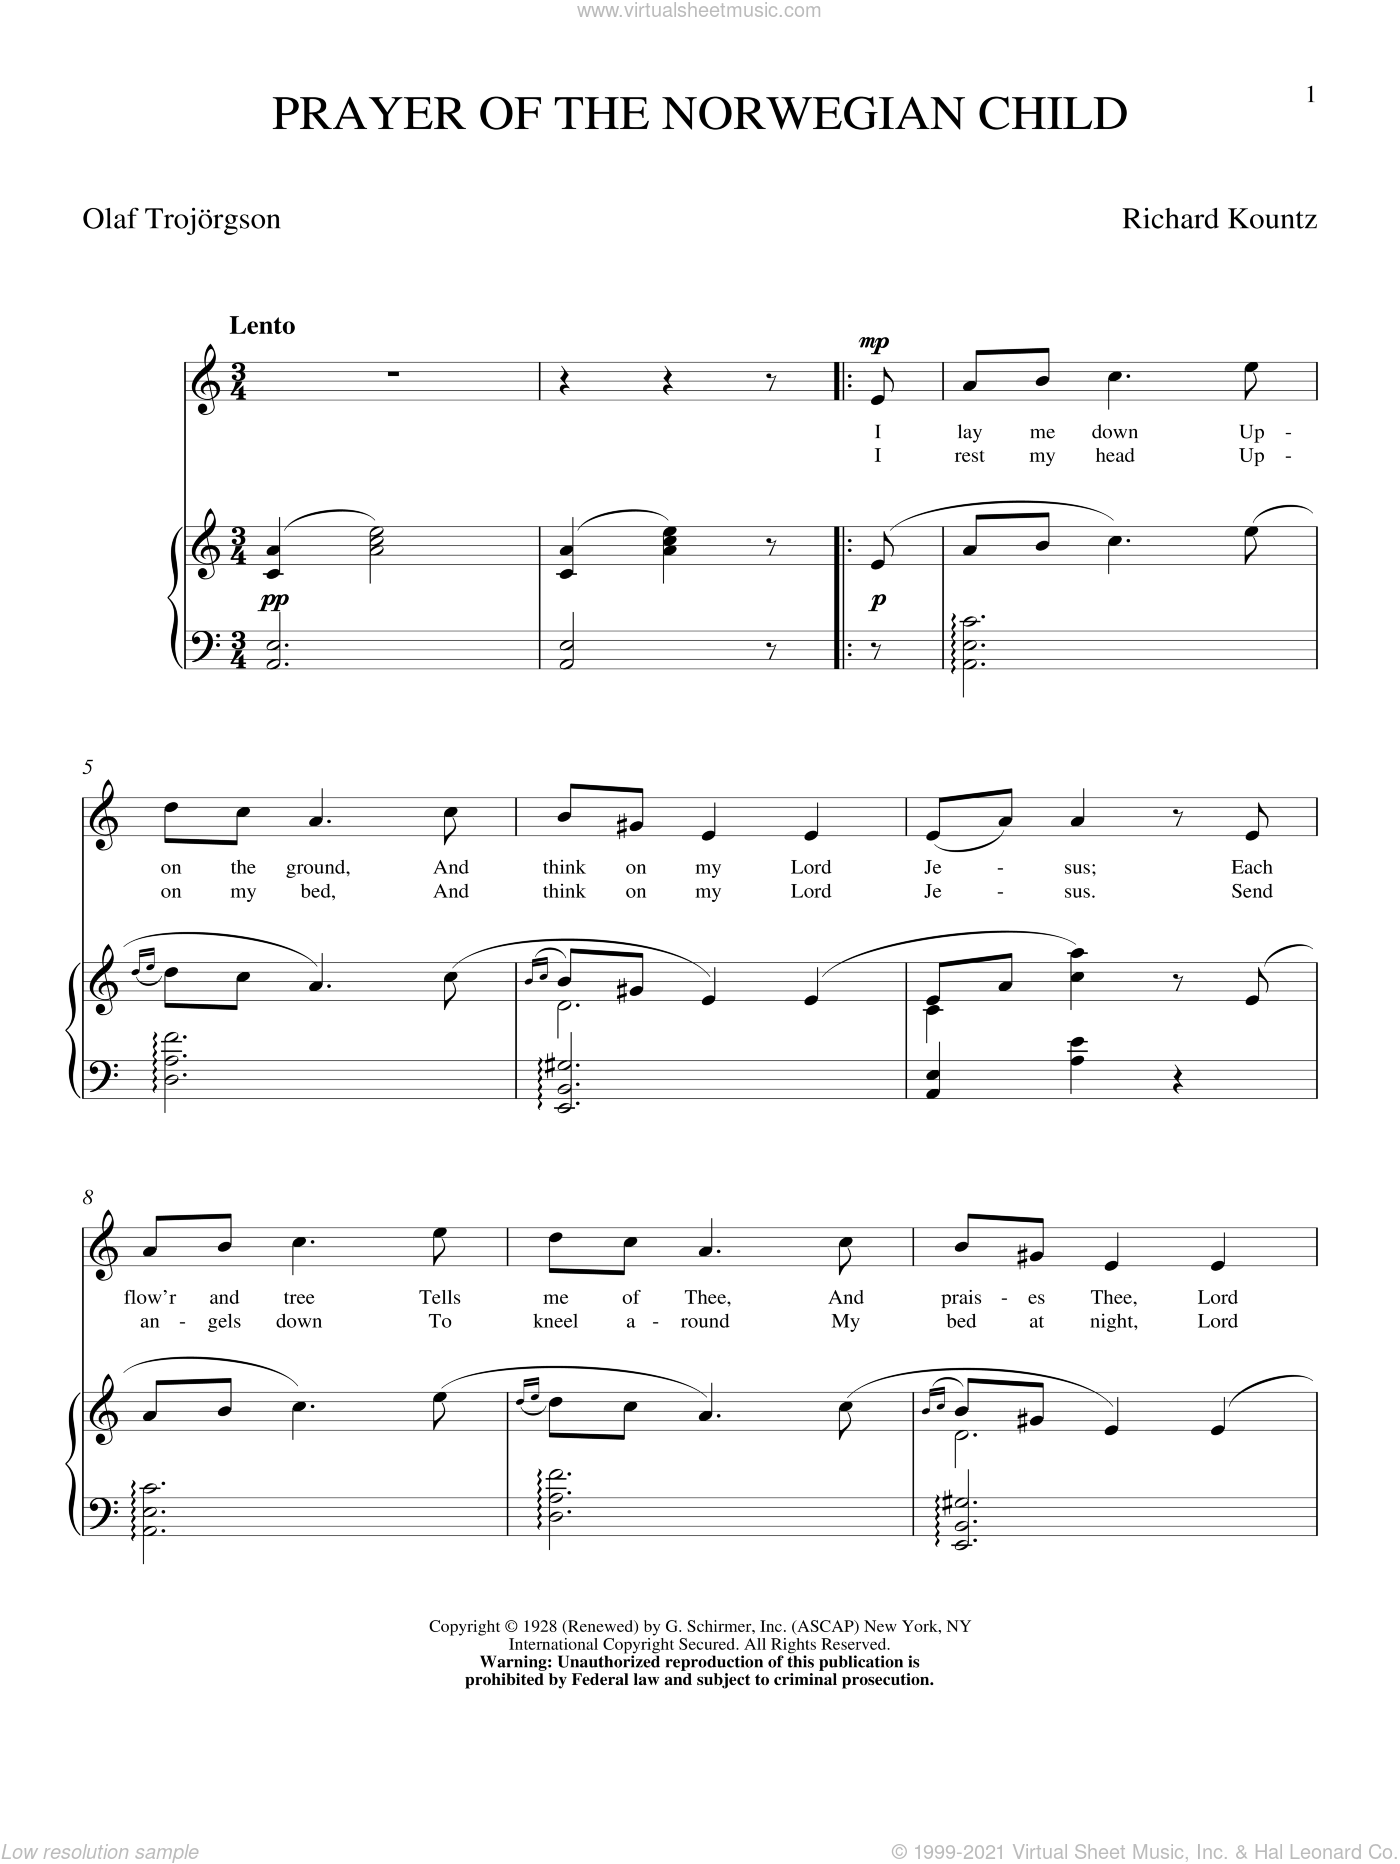 Prayer Of The Norwegian Child sheet music for voice and piano (High ) by Richard Kountz